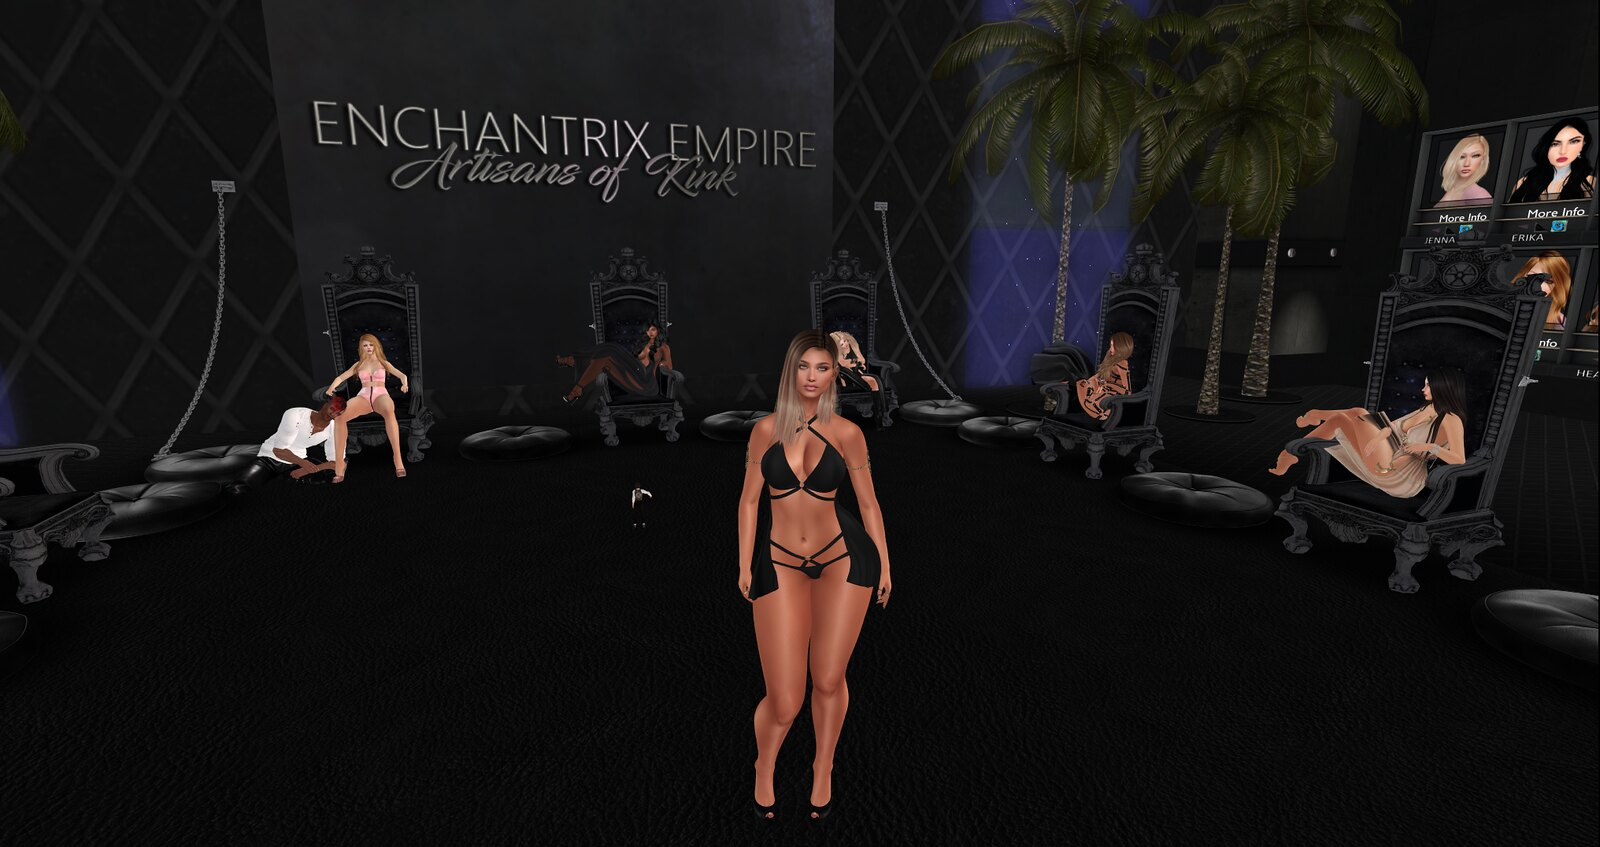 Enchantrix Empire - Virtual World Phone Sex